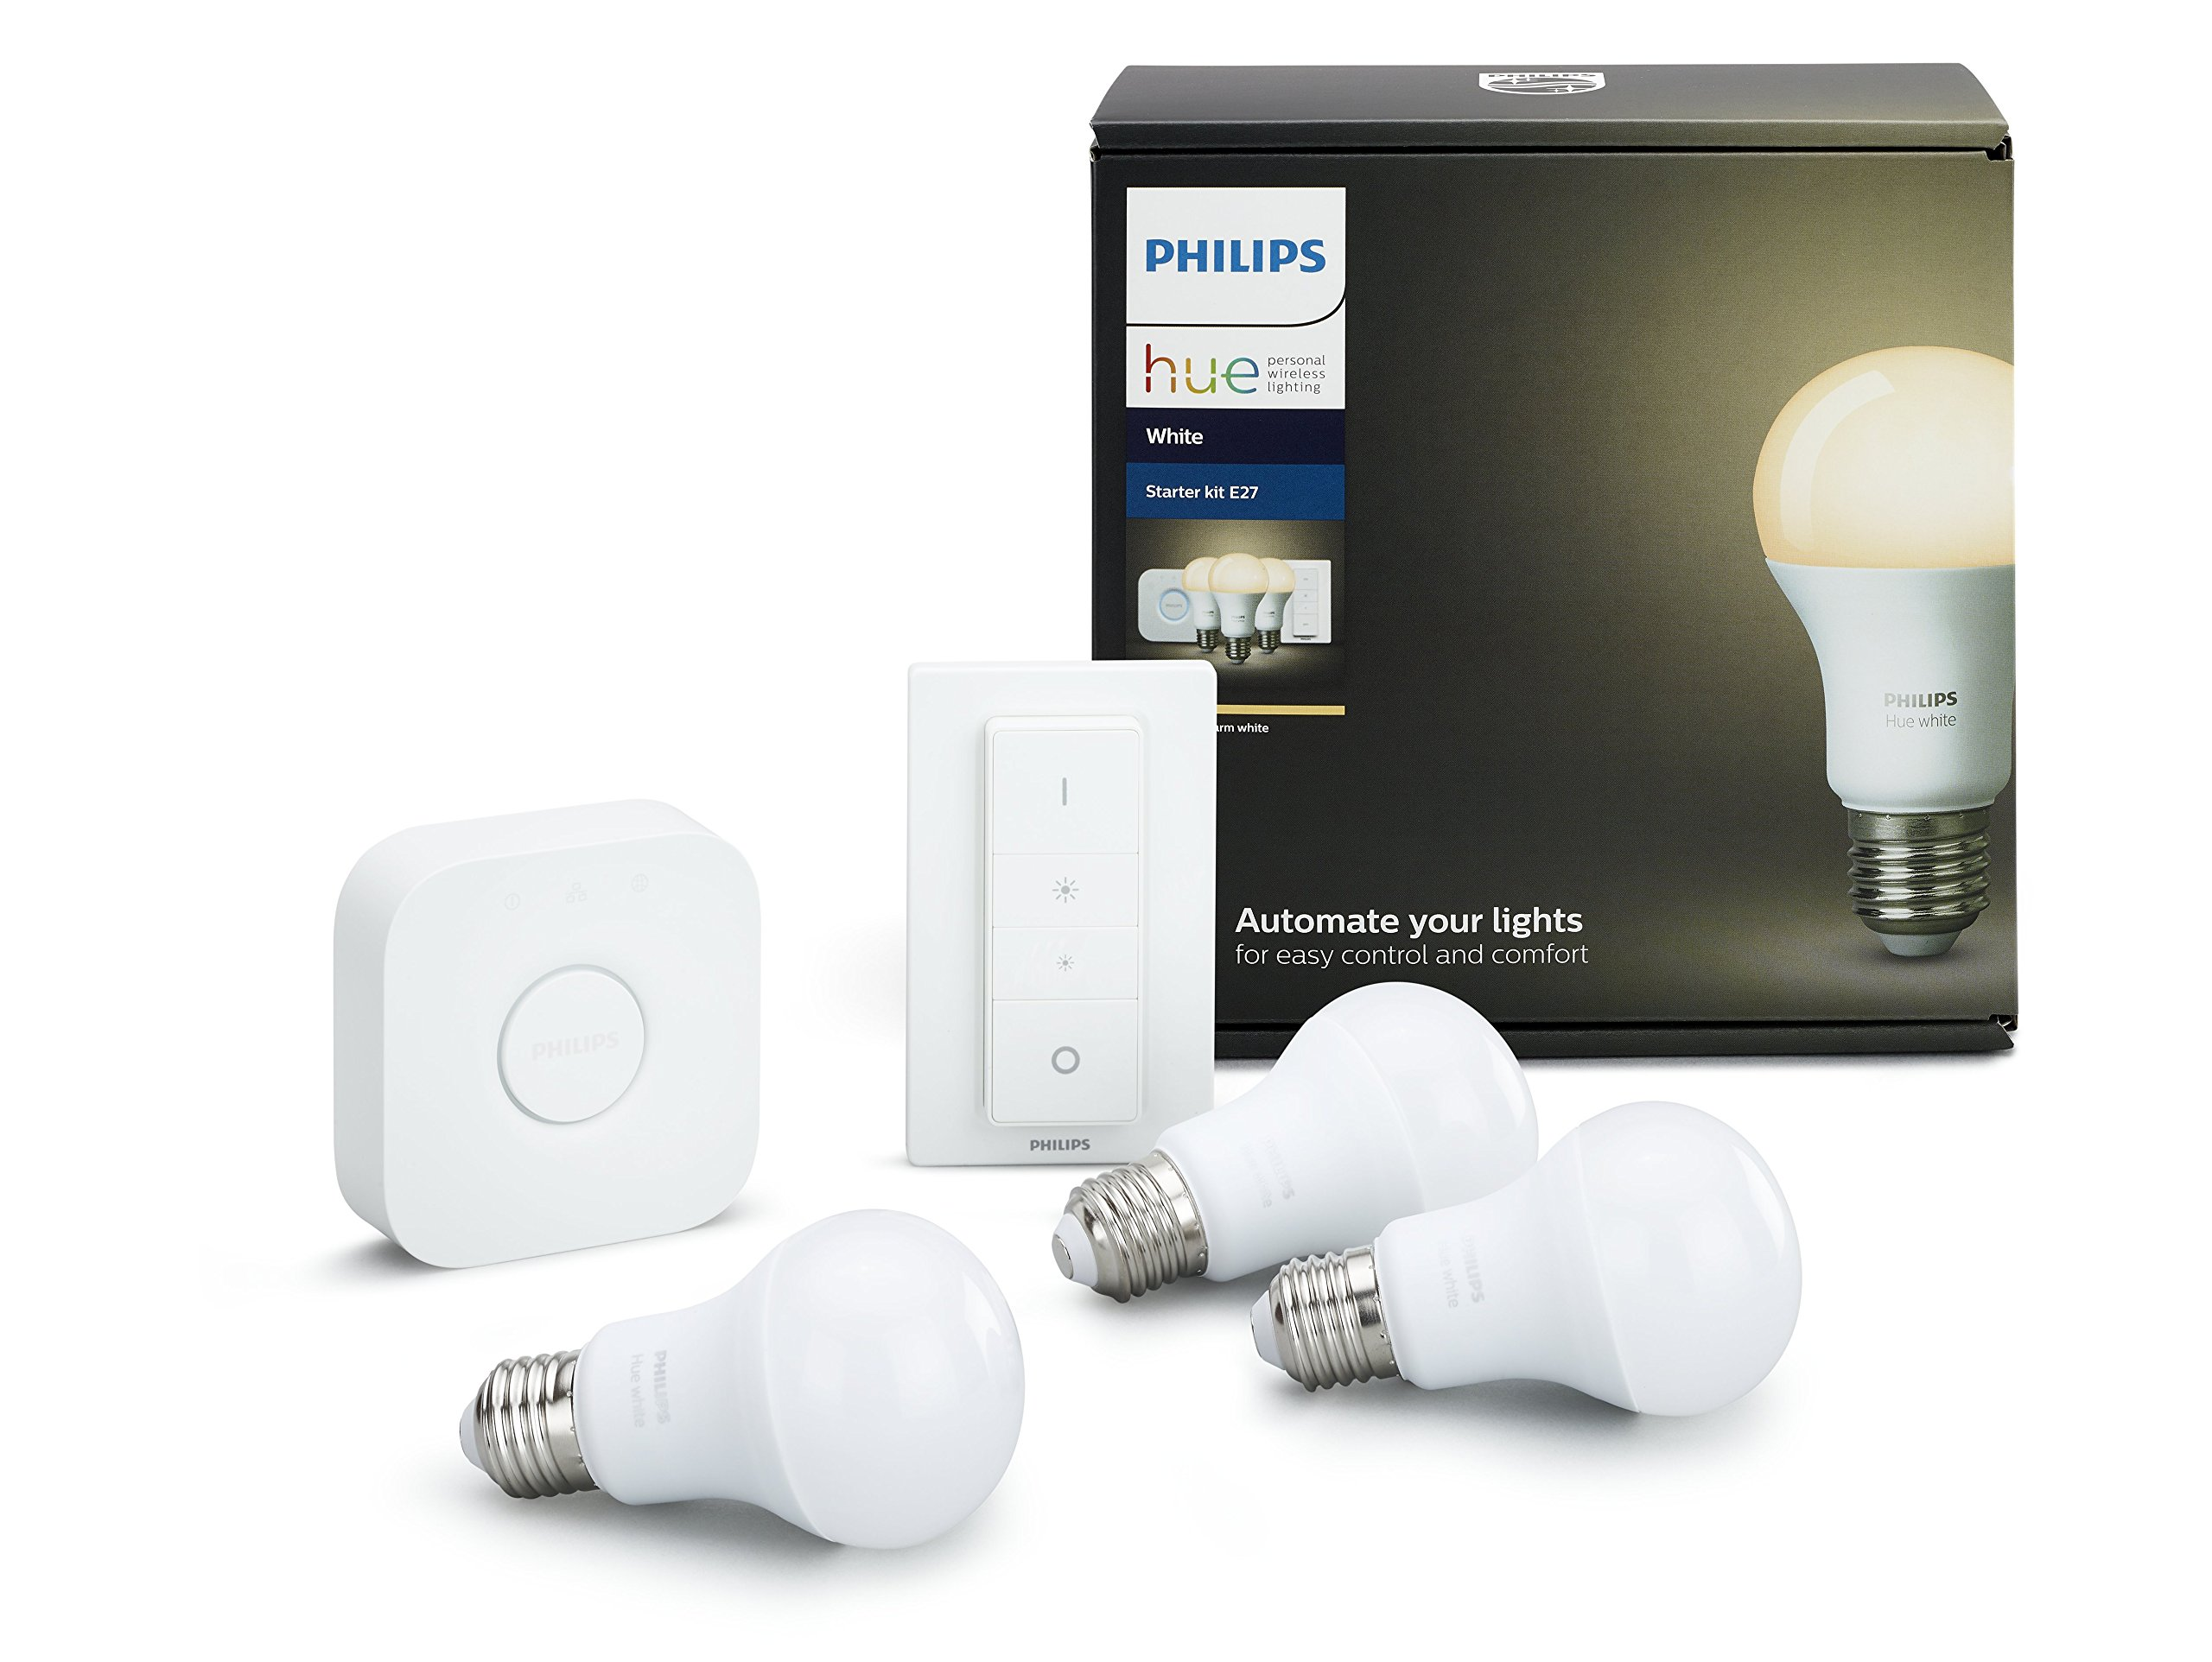 Philips Lampen Led : Philips hue white e led lampe starter set drei lampen inkl